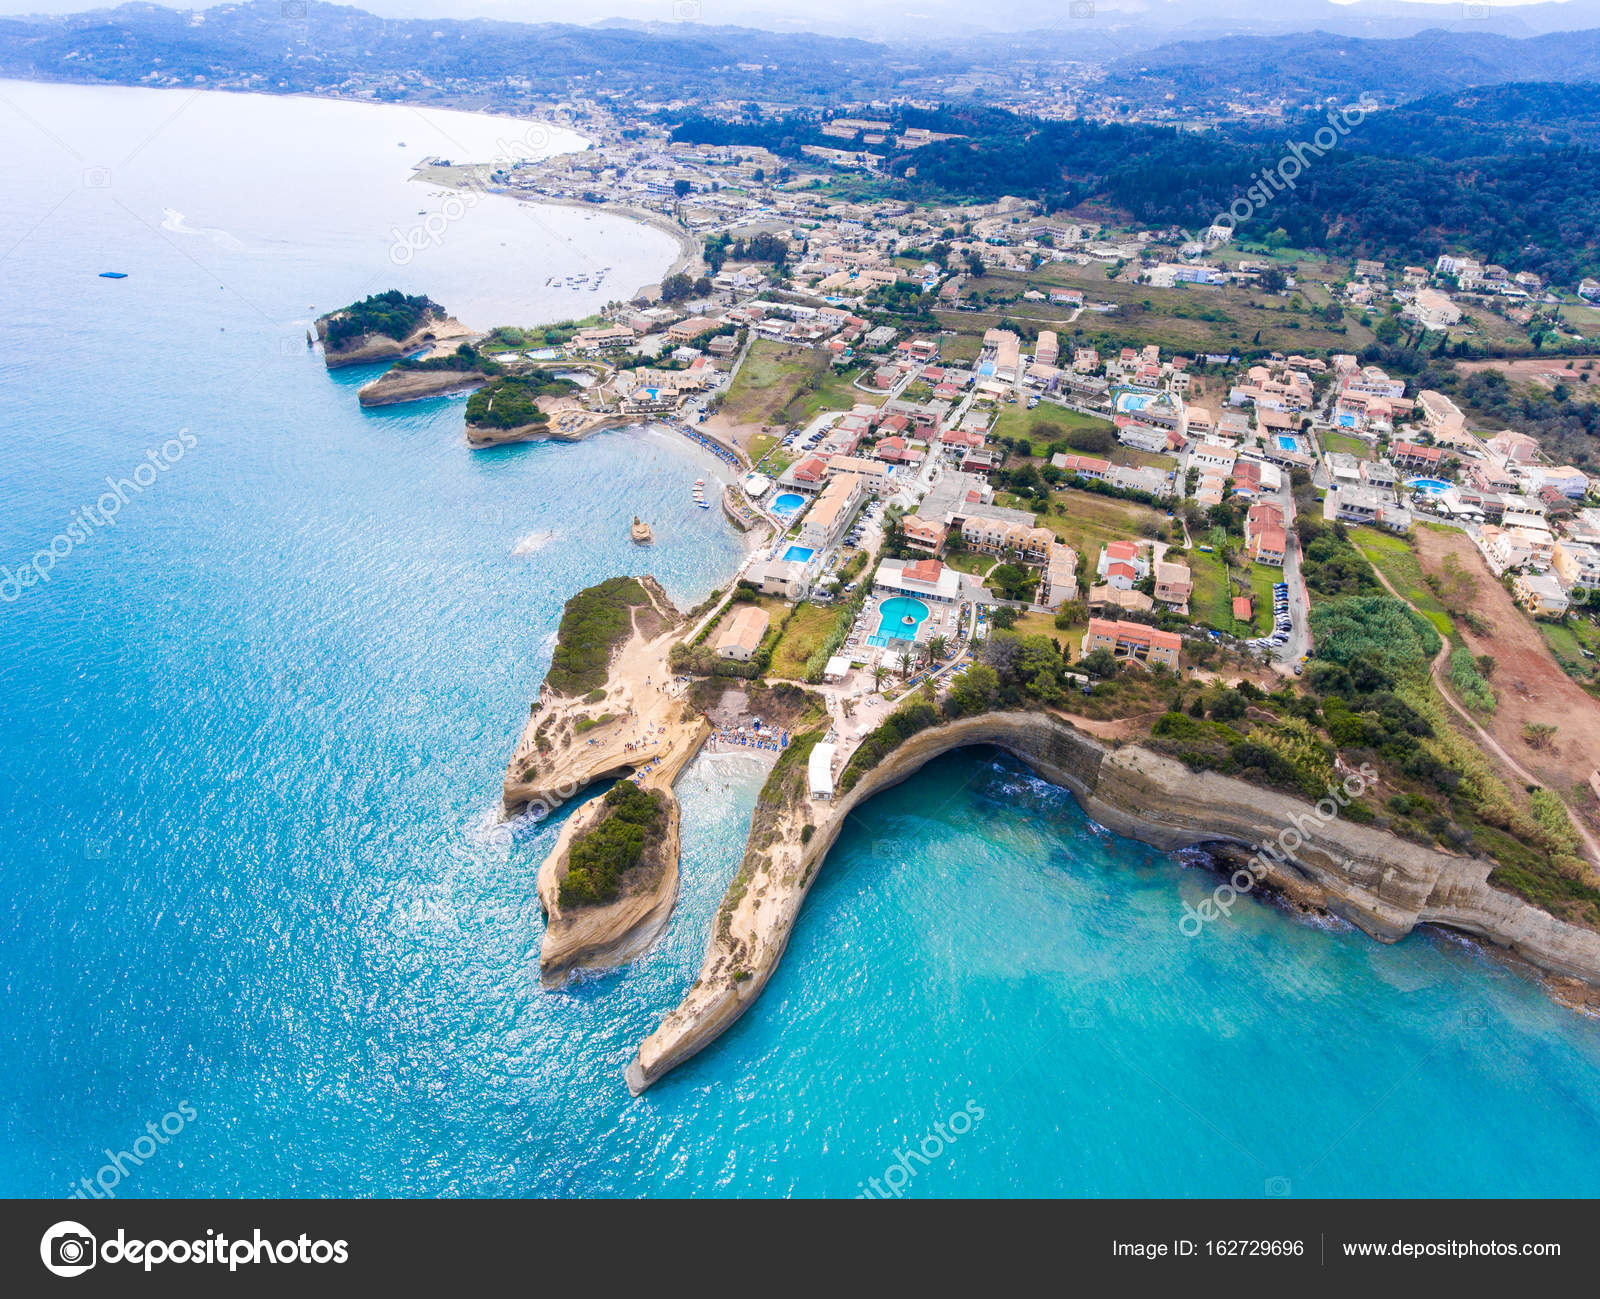 what does a drone do with Stock Photo Sidari Corfu Greece Famous For on 8 Tips Better Drone Photography furthermore Dont Land In The Pisco moreover Phrases That Need To Be Left In 2015 moreover What Is Roll Pitch And Yaw moreover Triangolo Bermuda Sparizioni.